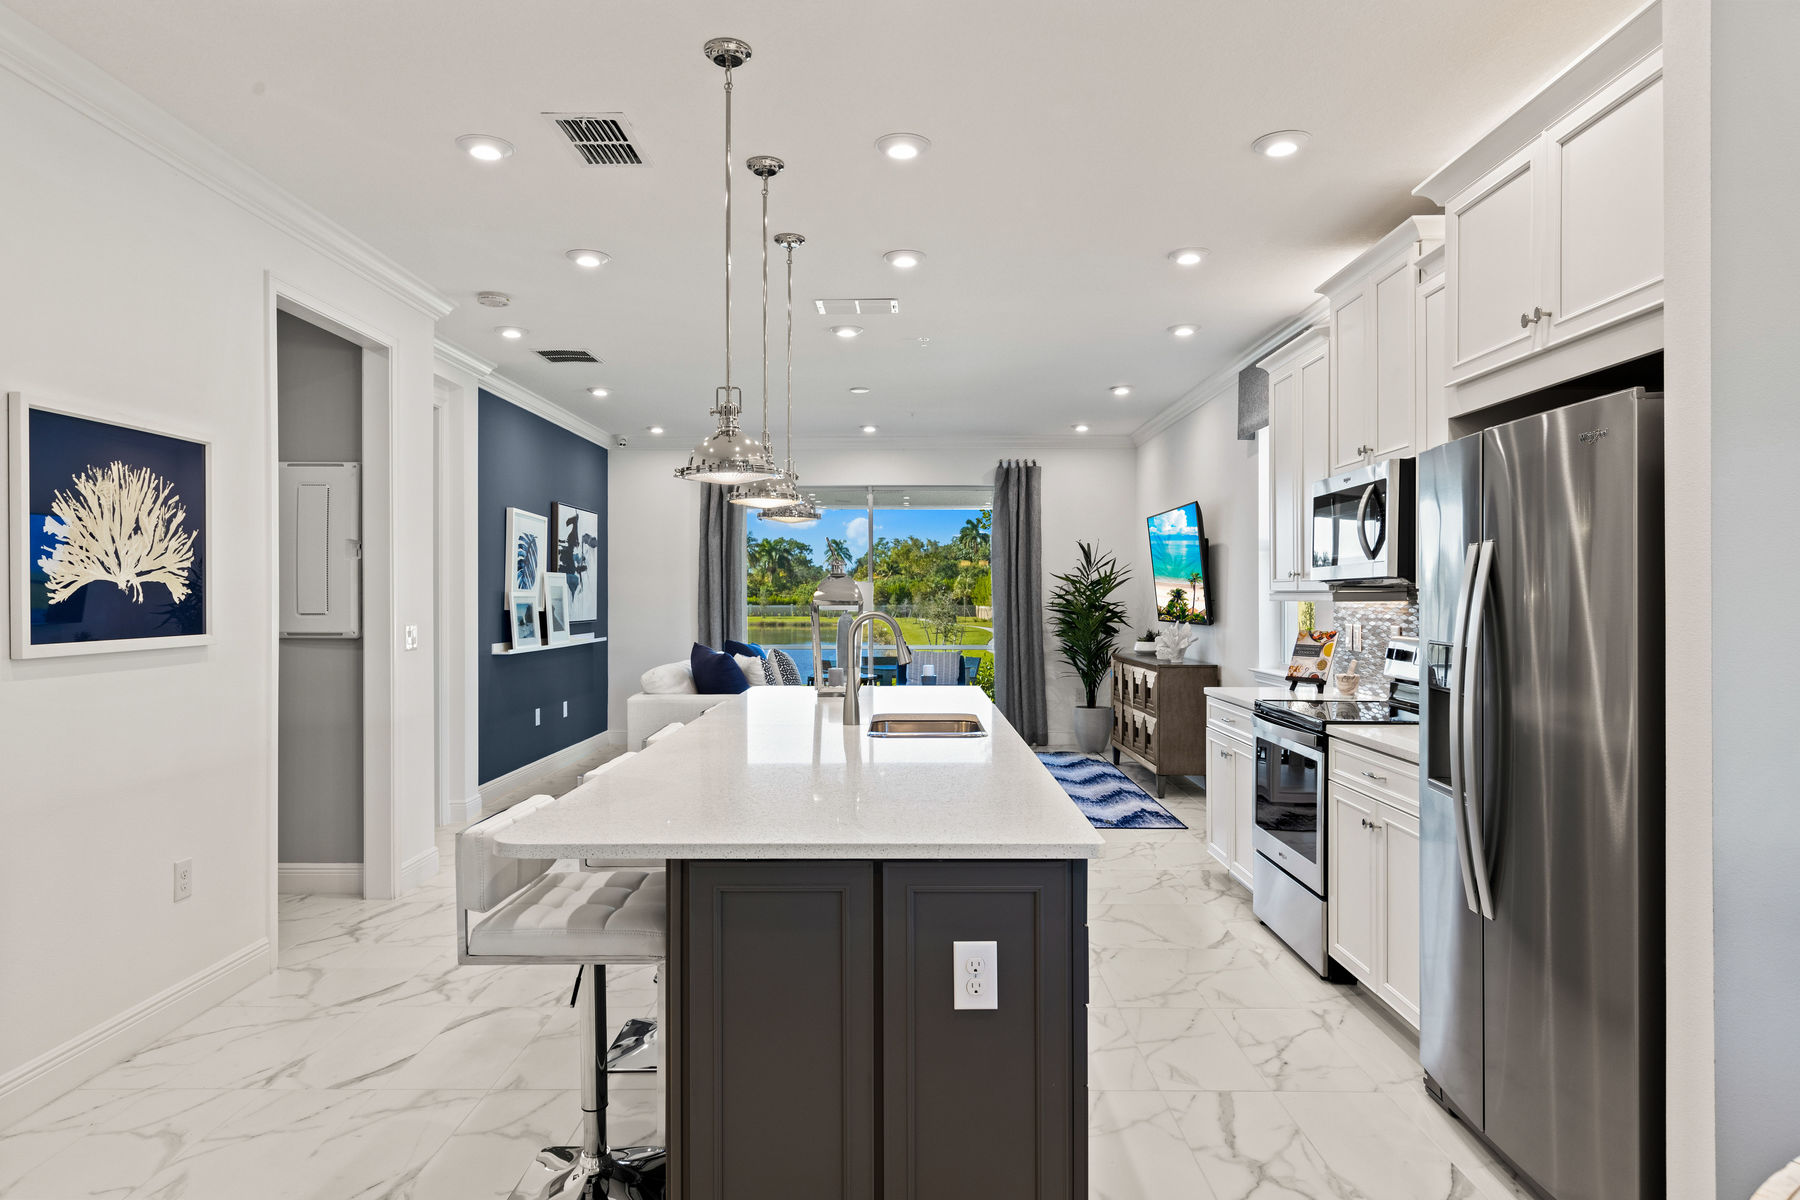 Captiva II Plan Kitchen at Arboretum in Naples Florida by Mattamy Homes